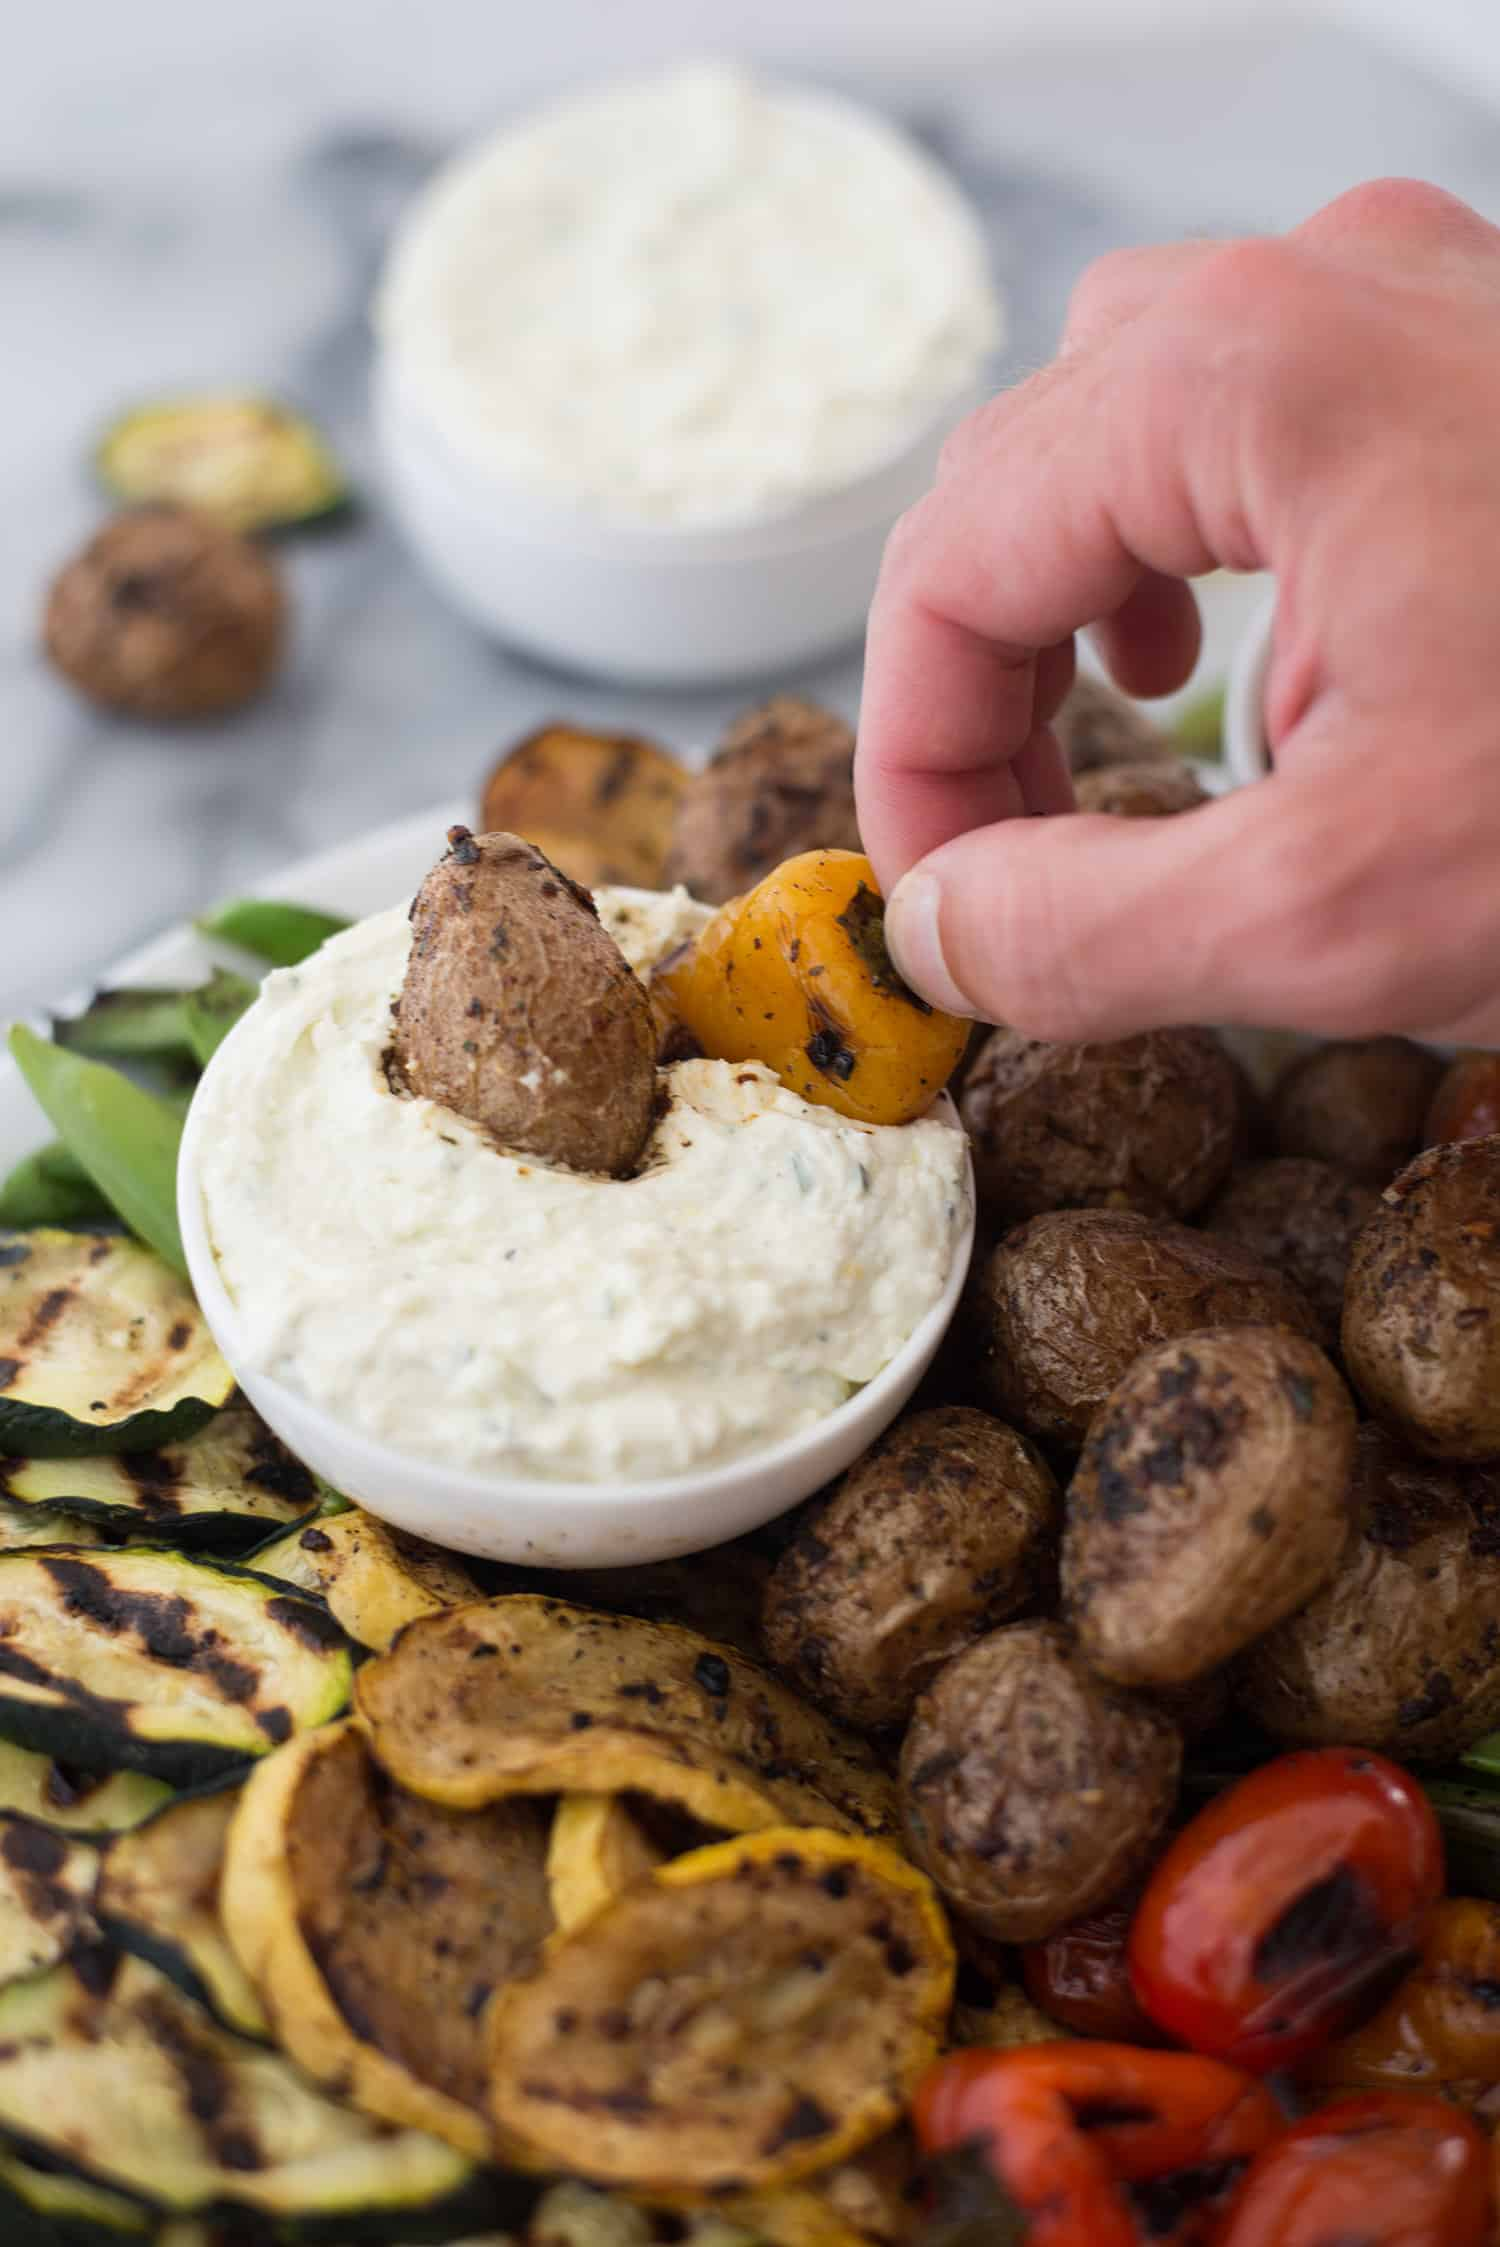 Grilled Vegetable Platter with Lemon-Feta Dip and Roasted Pepper Hummus! Easy, summer entertaining! Make a giant platter of grilled vegetables and dip ahead of time for no-fuss dinner. BBQ grilled potatoes, any vegetable you want and a salty, tangy dip! Vegetarian and gluten-free. | www.delishknowledge.com